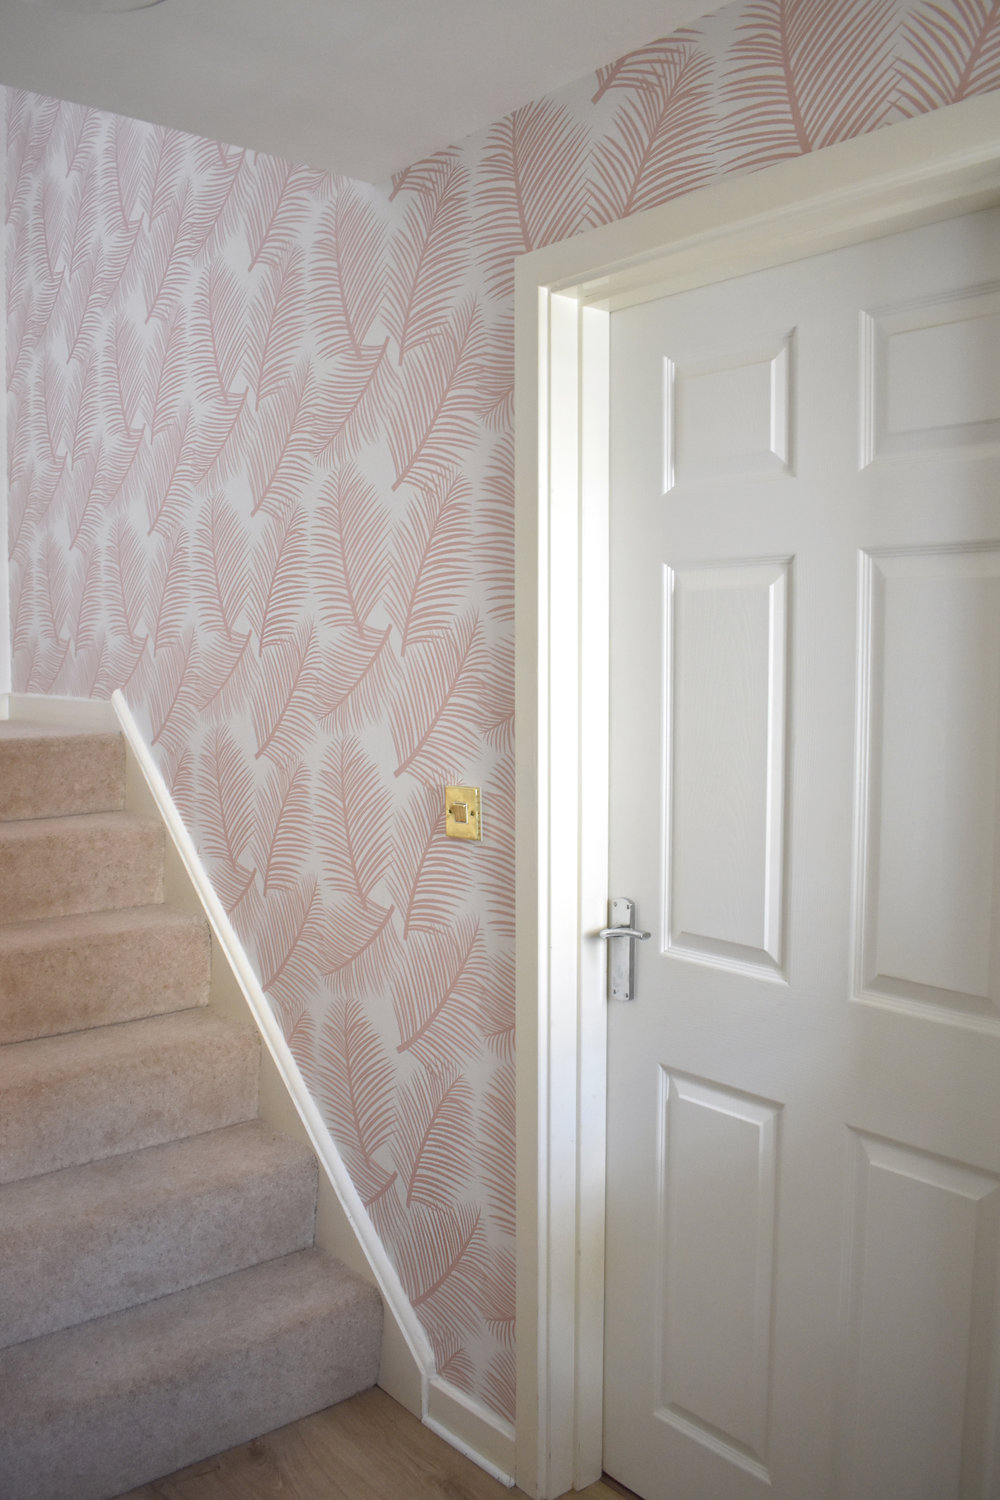 Palm Leaf Garden wallpaper in Blush